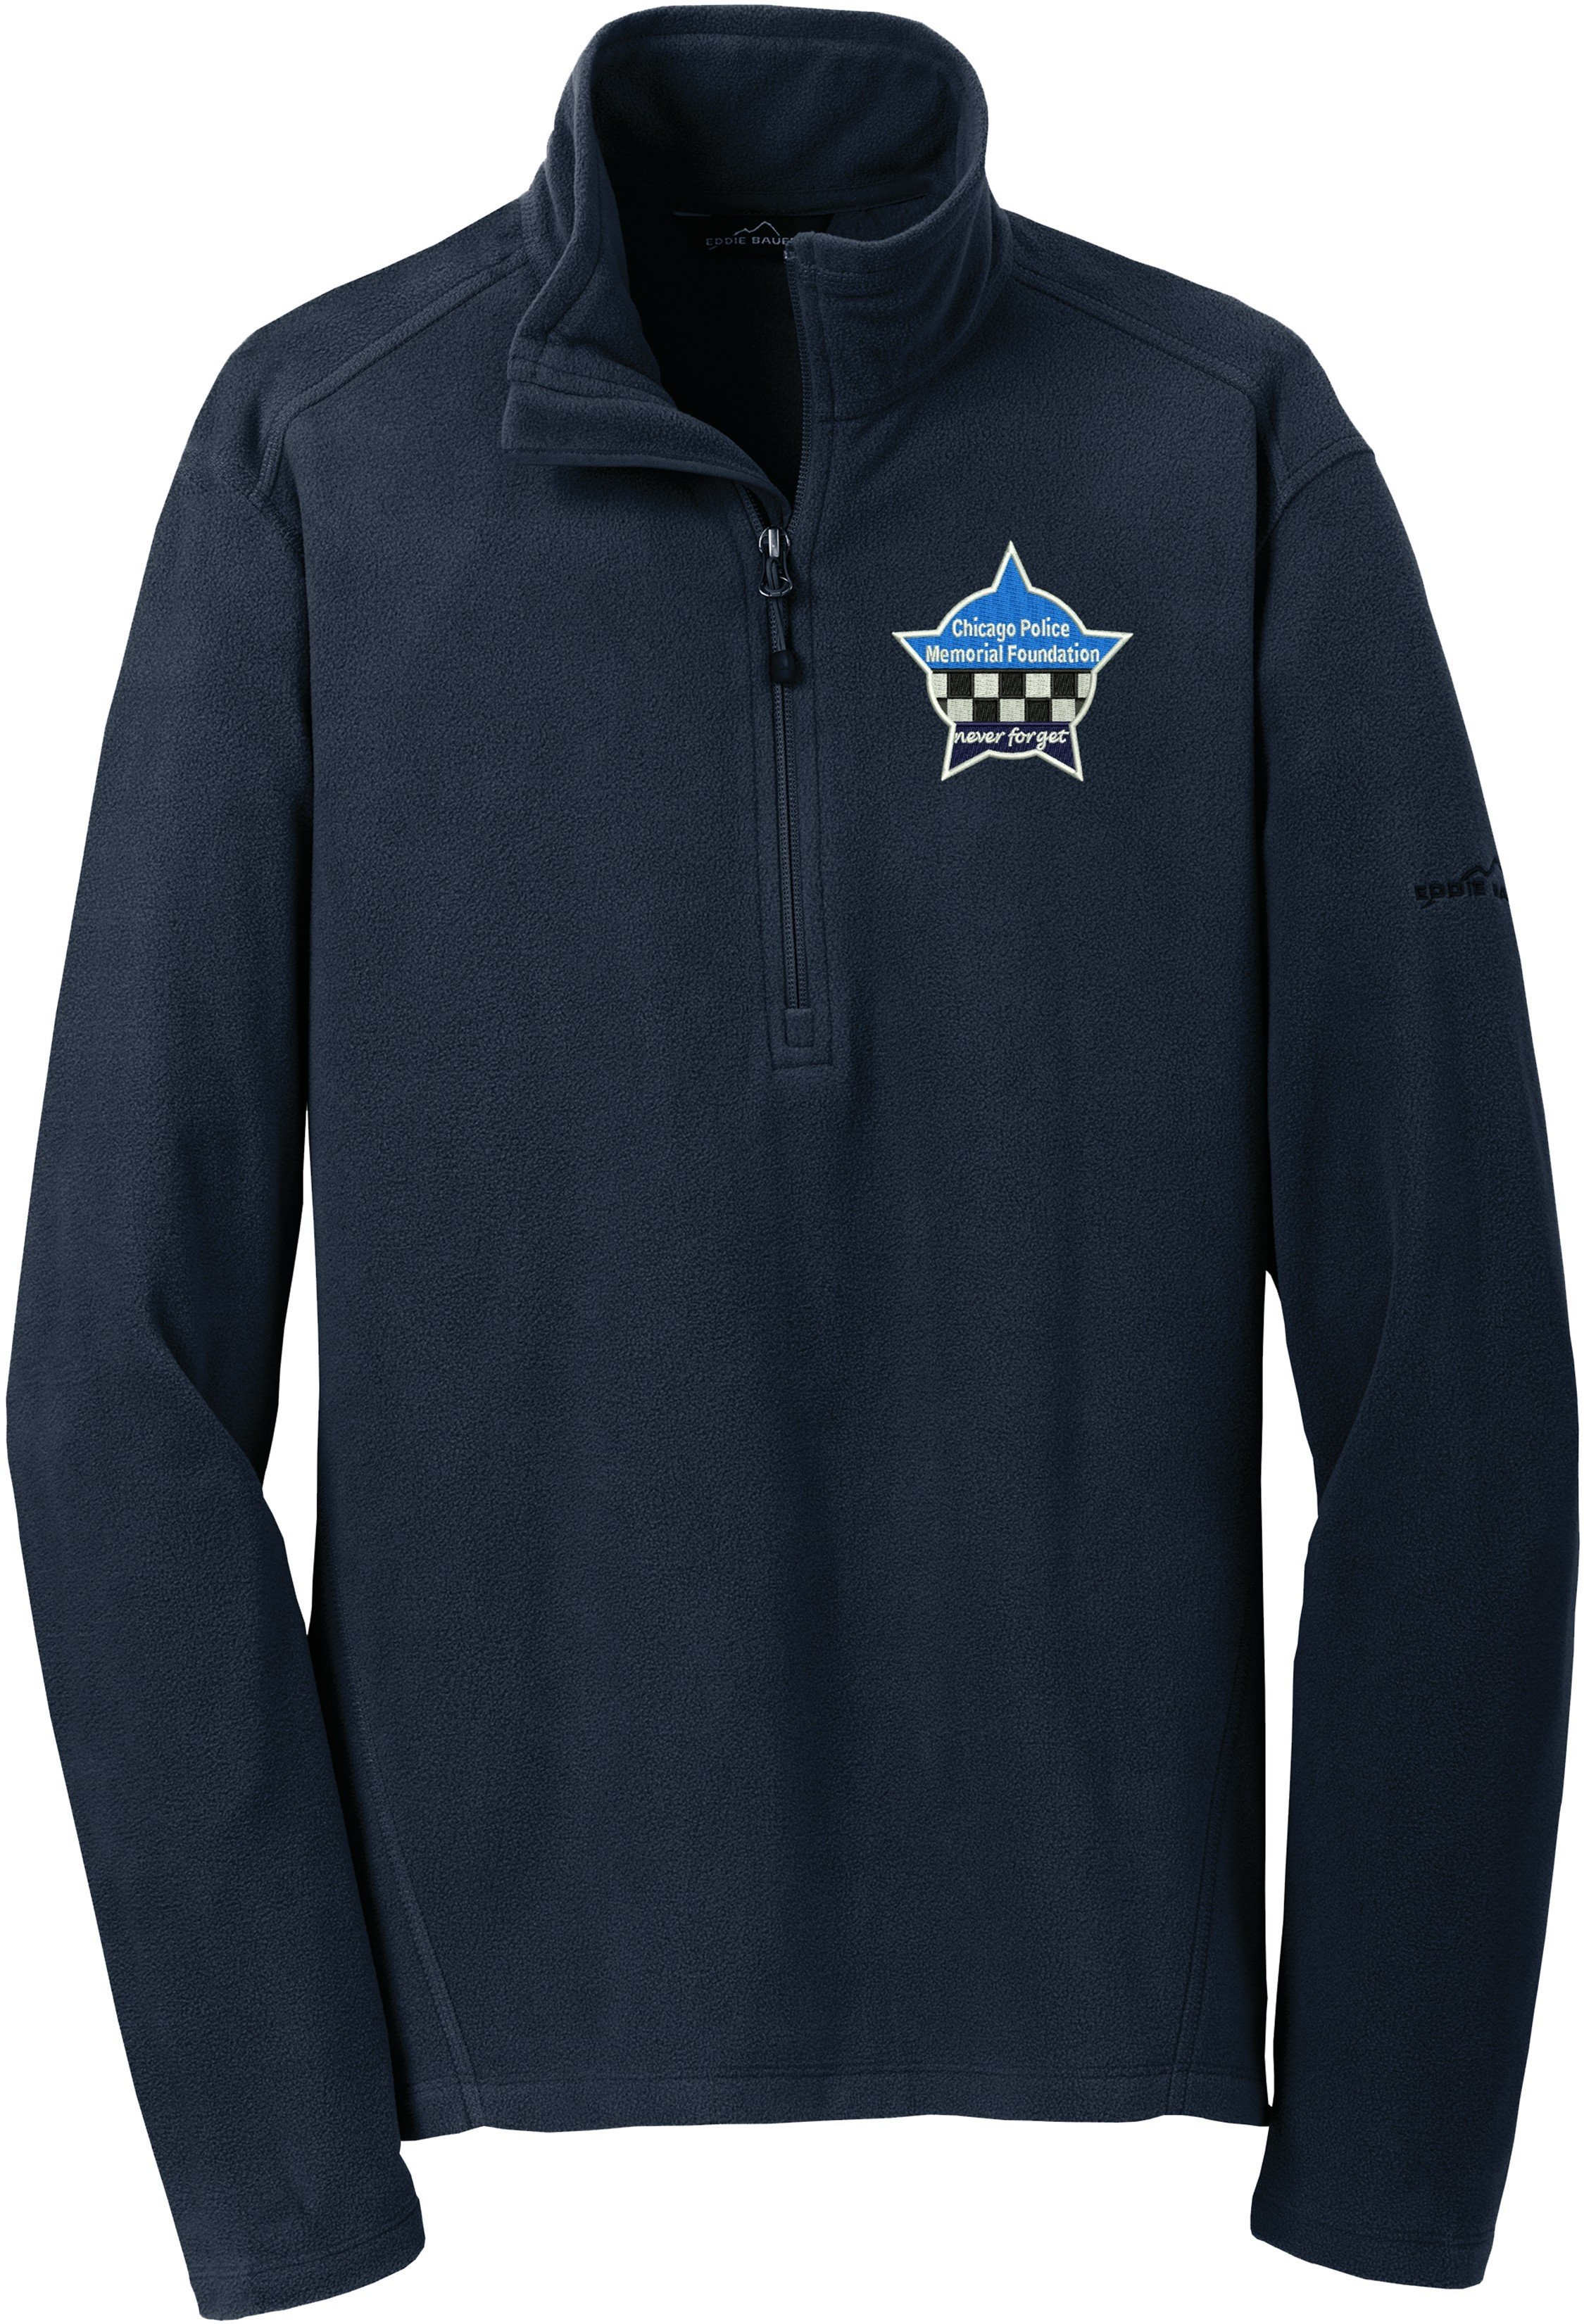 eddie bauer cpd memorial microfleece jacket 1 2 zip eb226 chicago police memorial foundation eddie bauer cpd memorial microfleece jacket 1 2 zip eb226